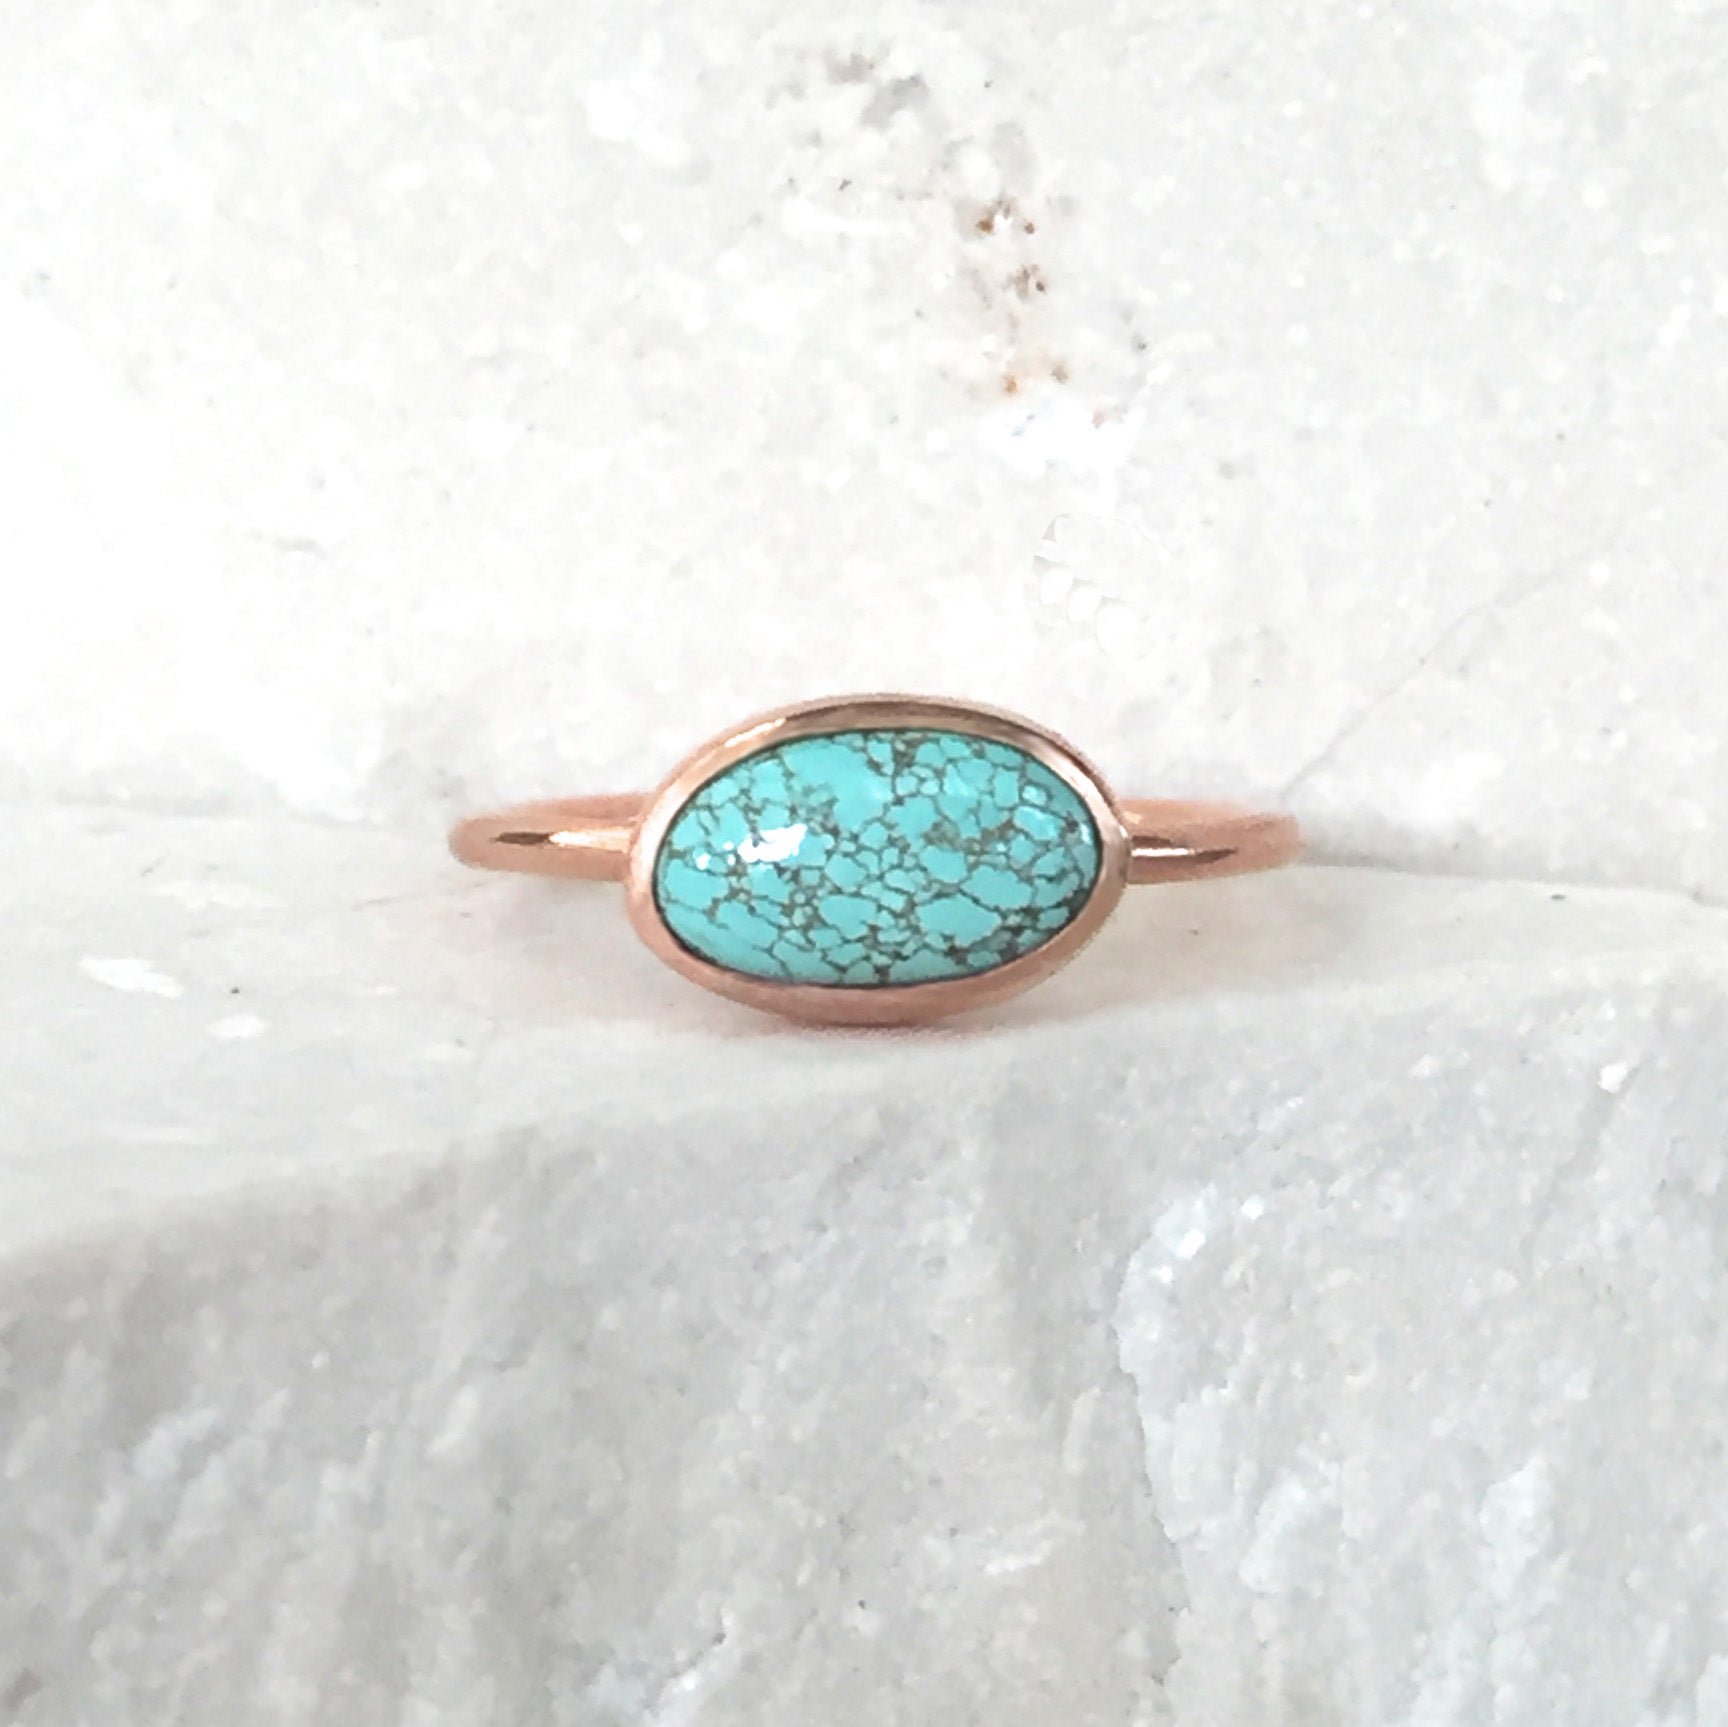 ring pink products img pale sterling rhodochrosite silver of rings natural copy boho turquoise stone handmade